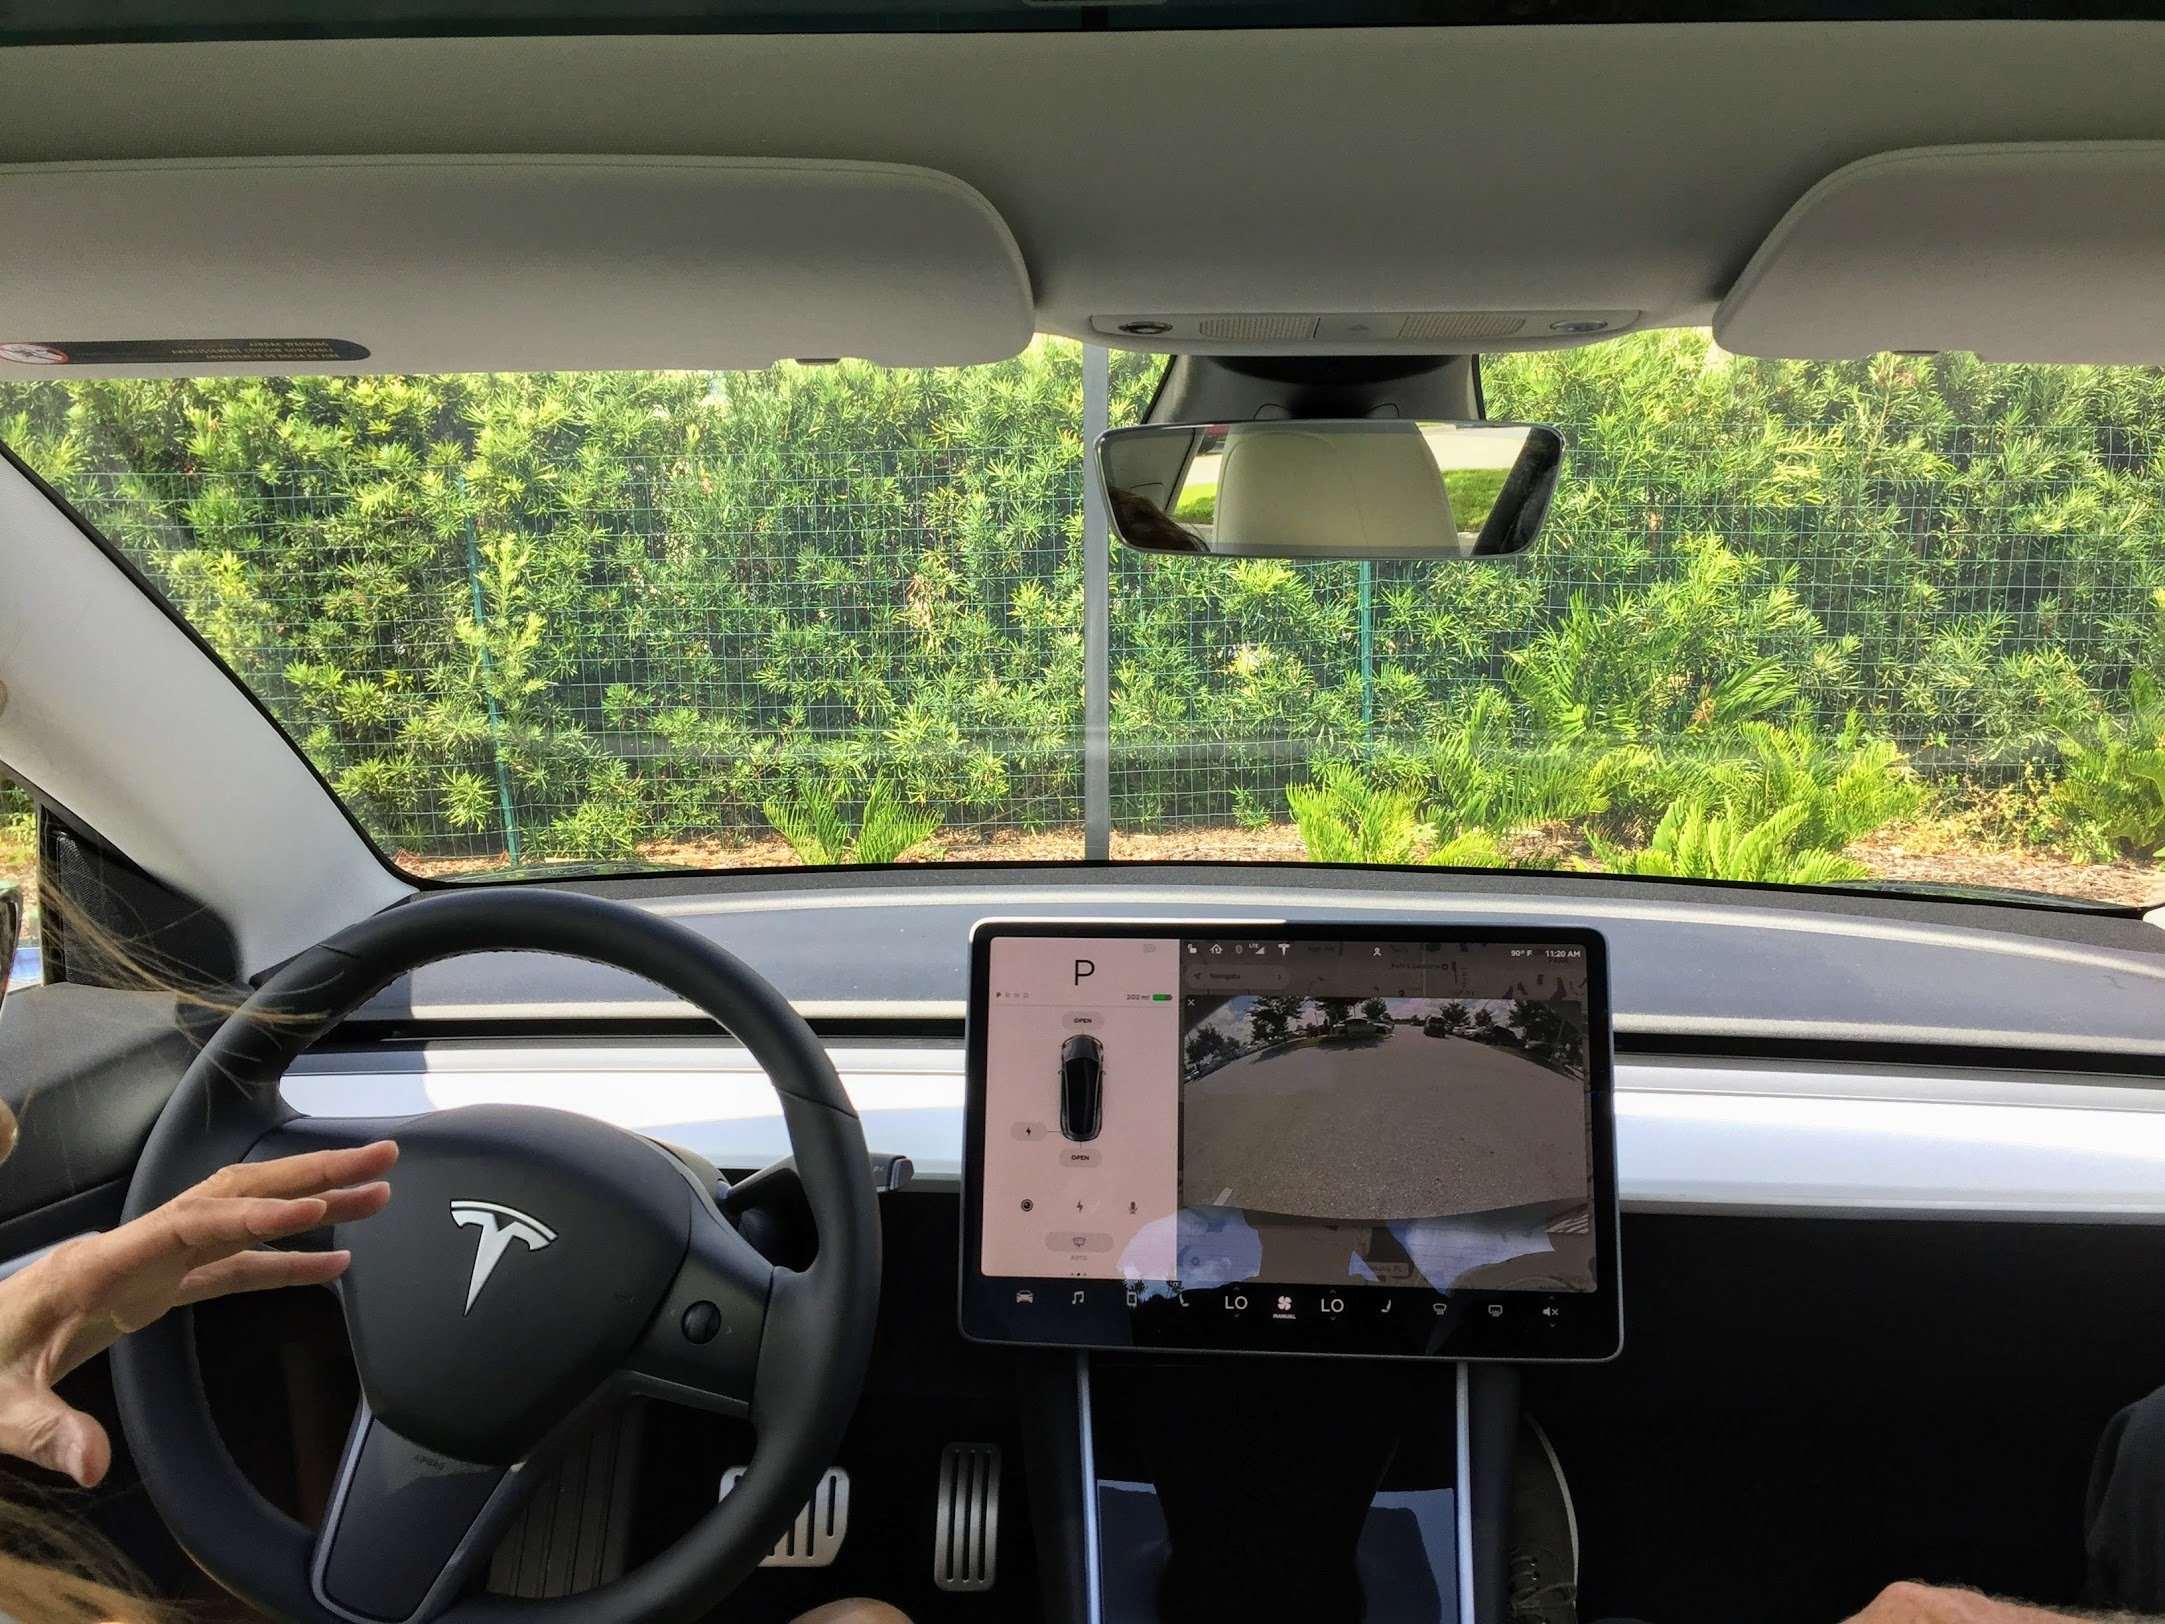 Tesla's Over-The-Air Software Updates Have Big Auto Playing Catchup